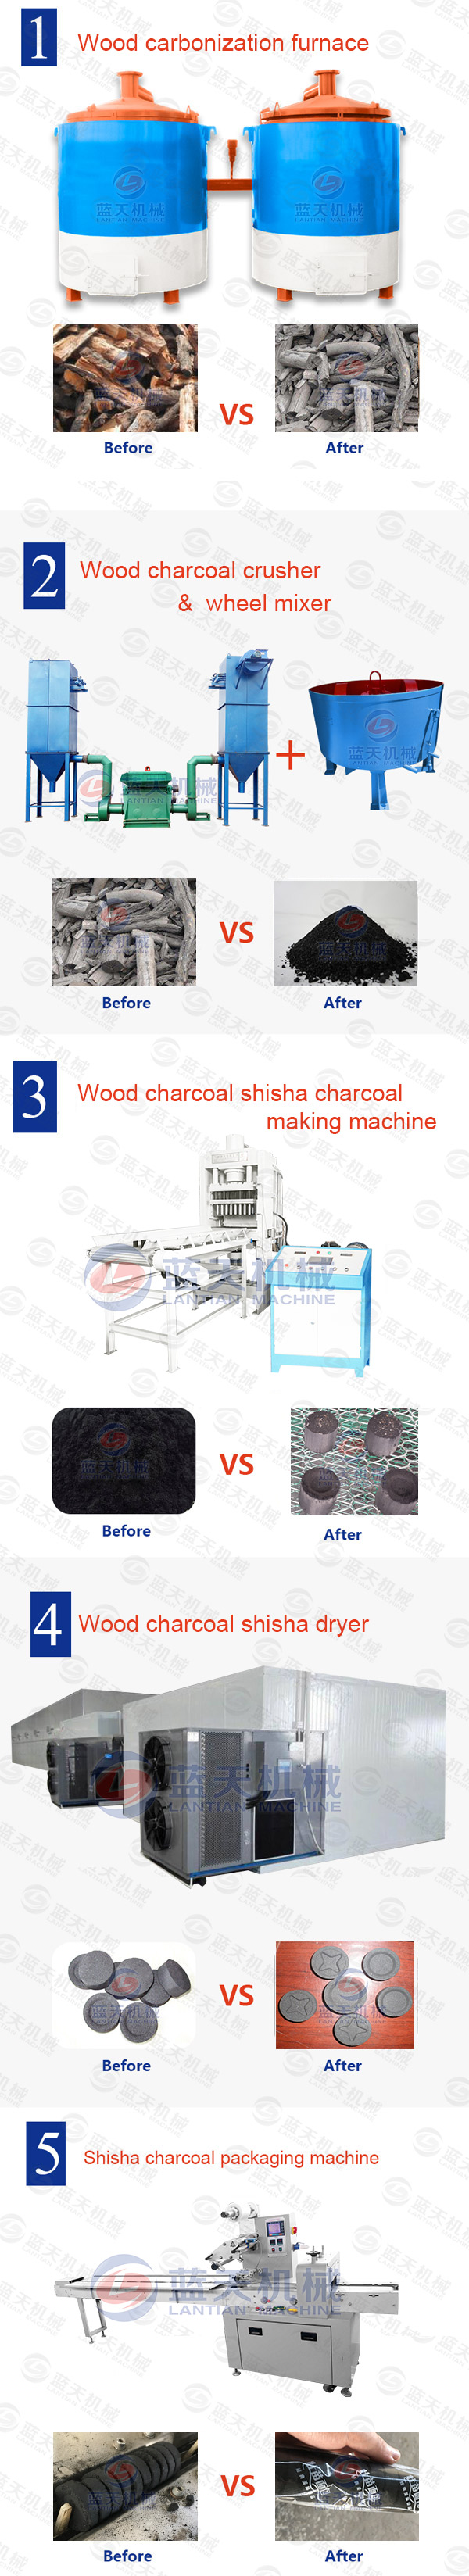 wood charcoal shisha charcoal making machine